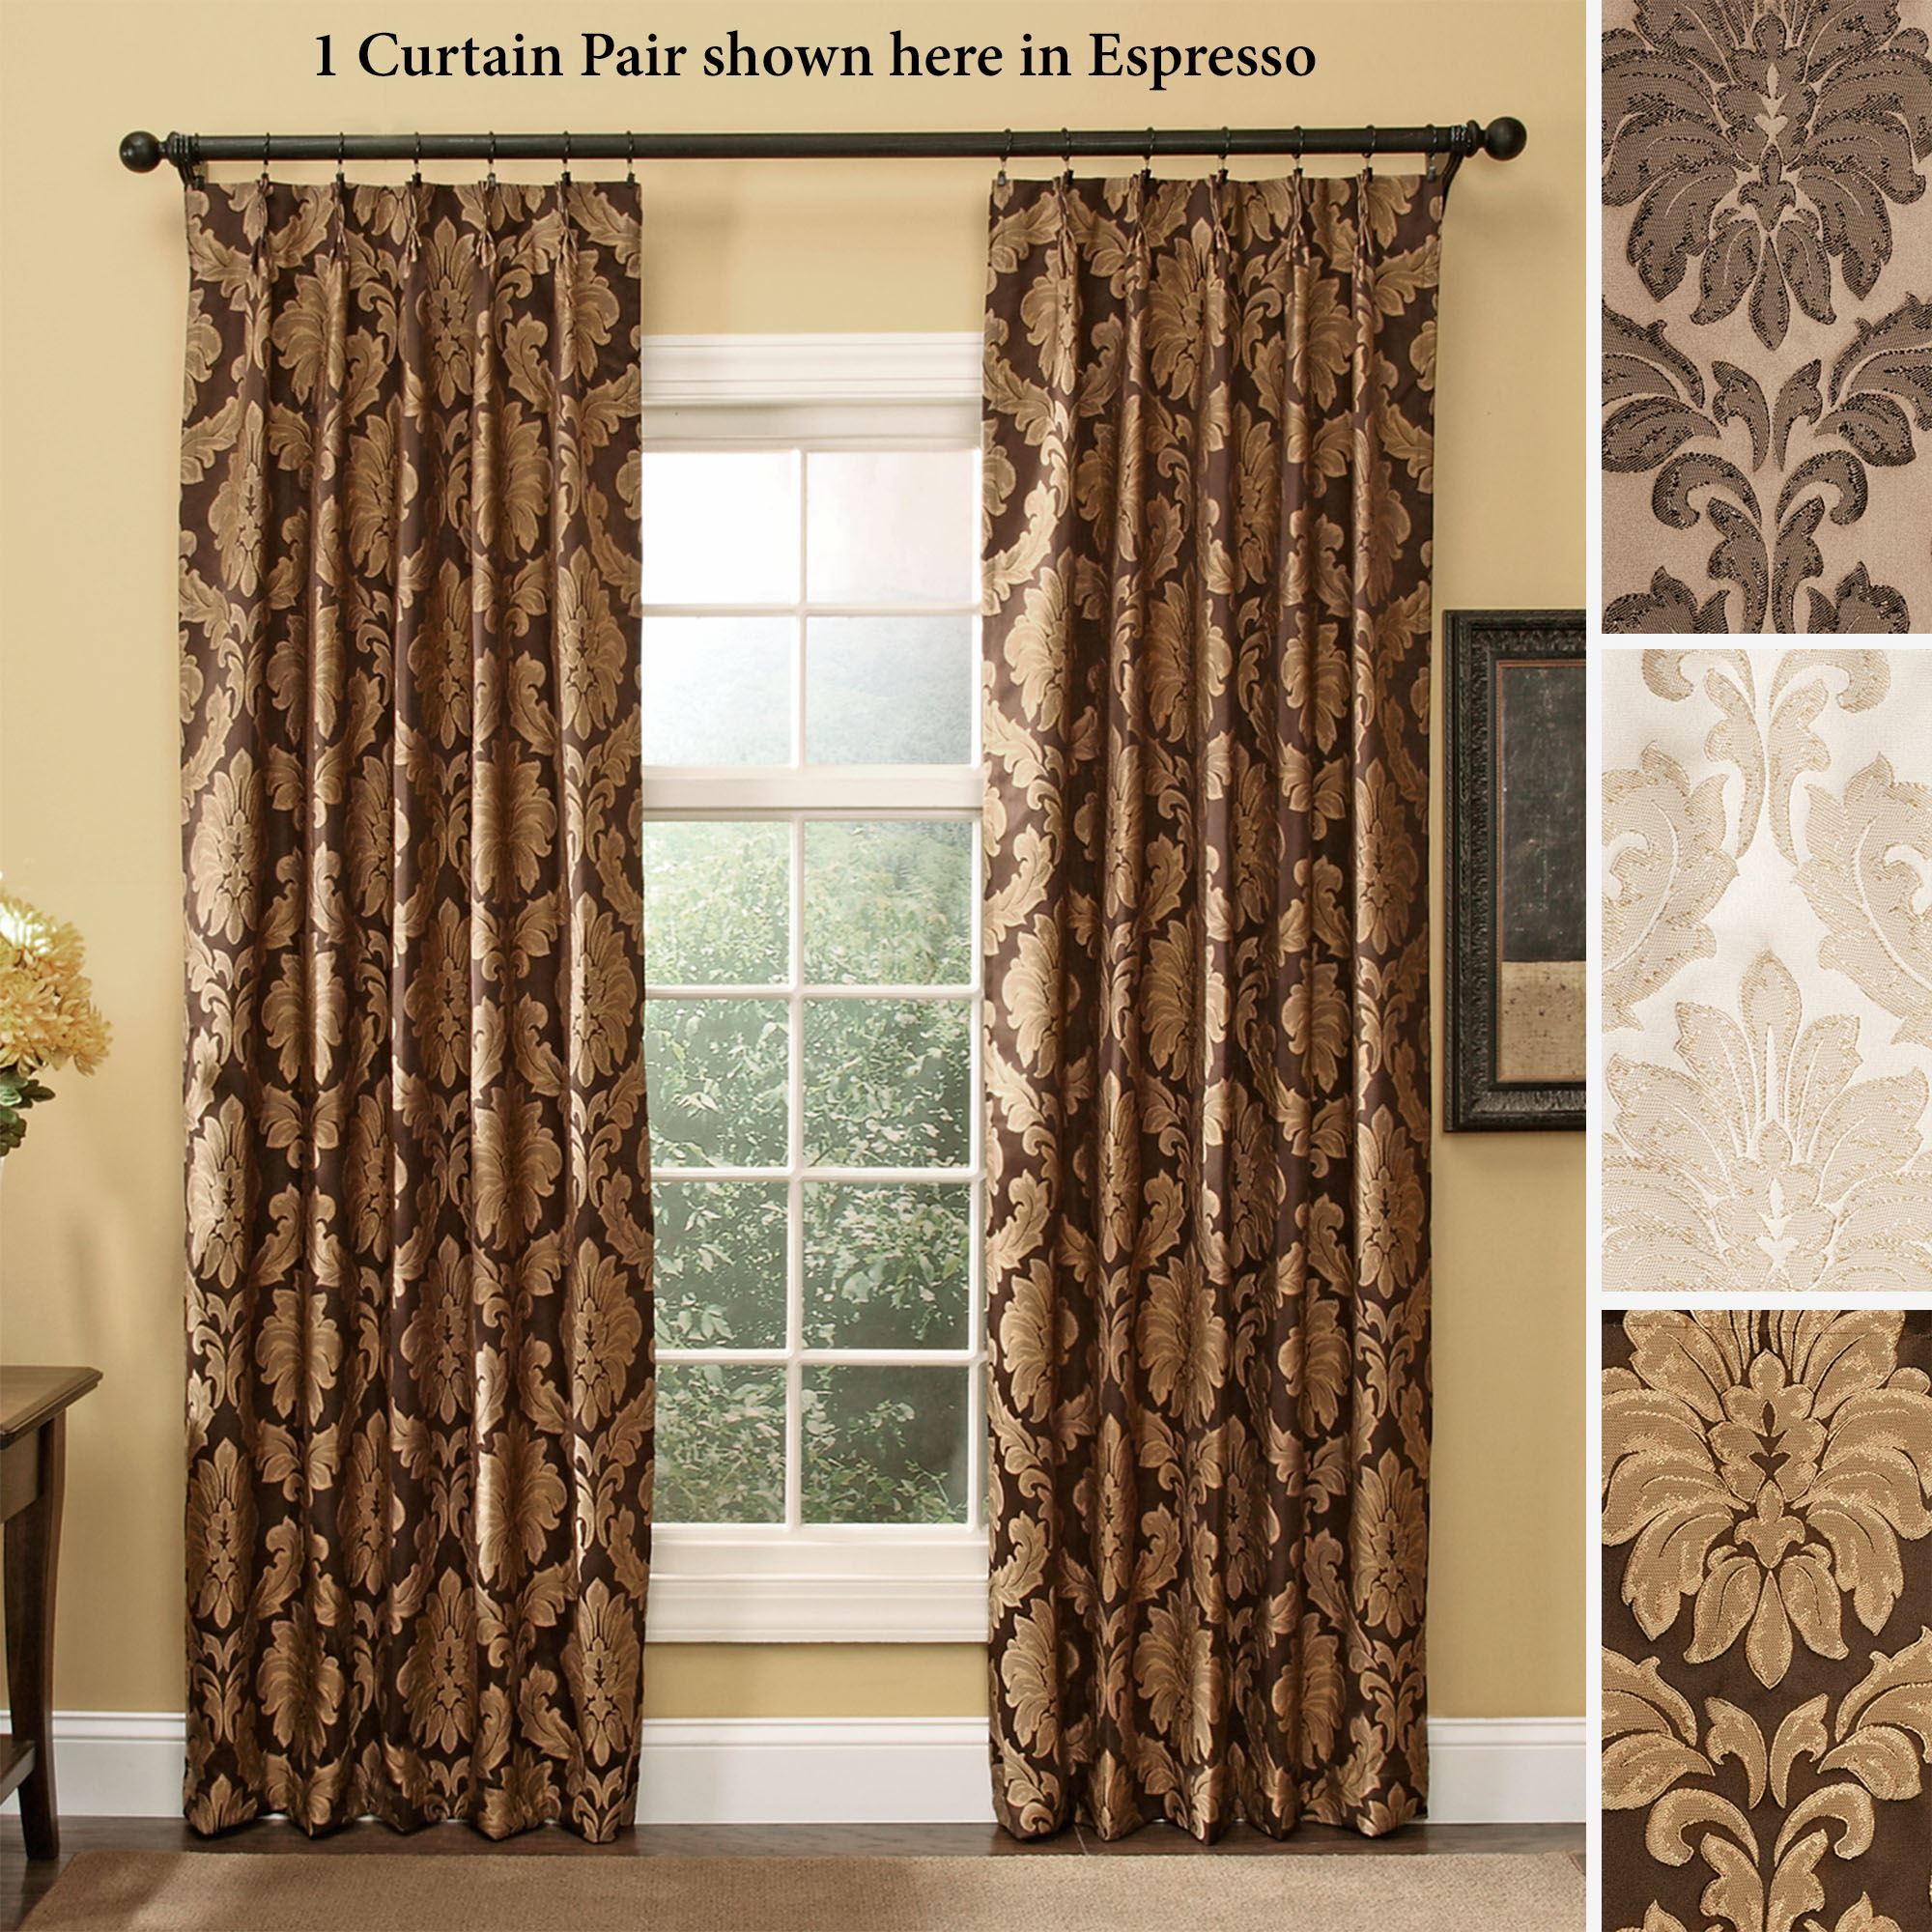 jsp shop fmt s p window com wt furniture scl treatments qlt f kohl and event dt drapes curtains for decor sale